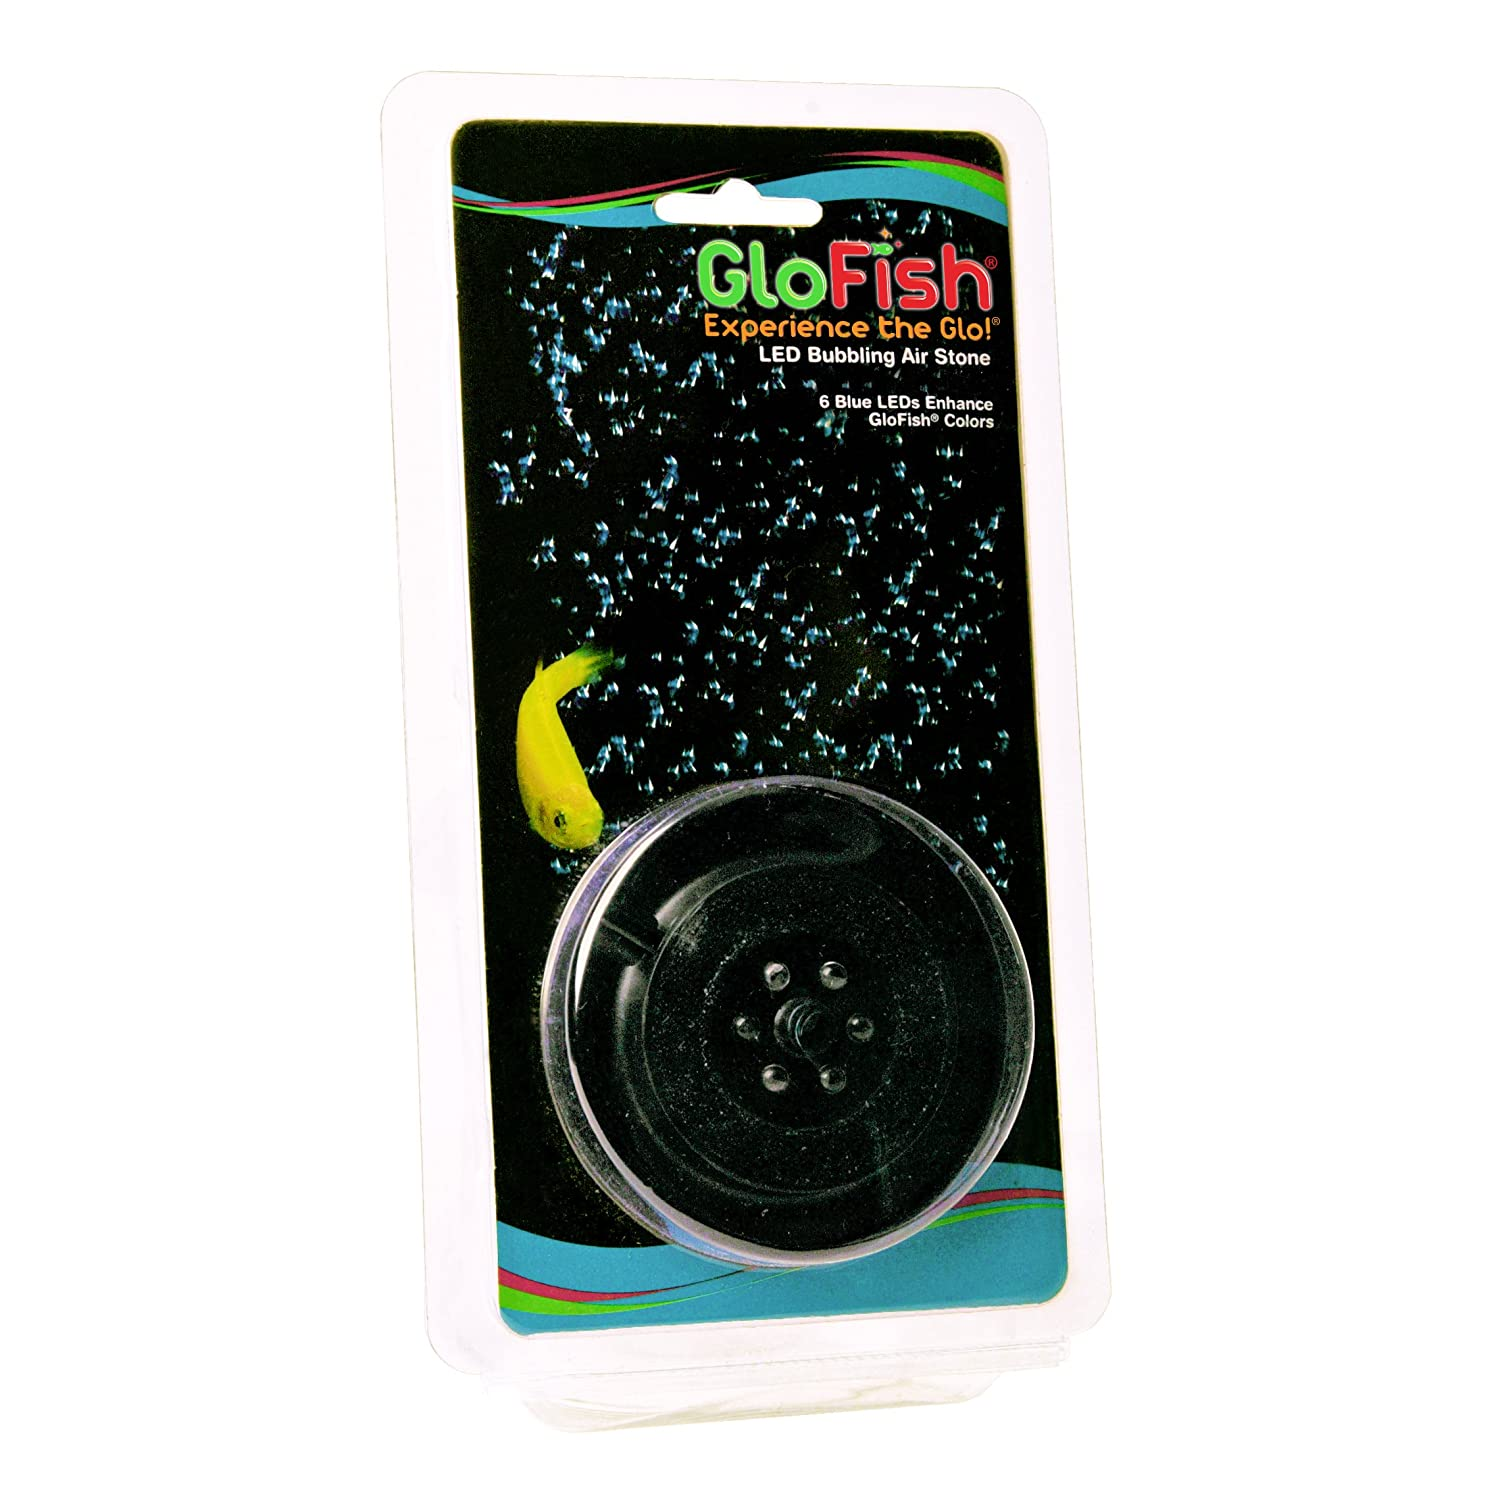 81NaQUaWmAL._SL1500_ amazon com glofish round led bubbler with 6 blue leds aquarium  at creativeand.co